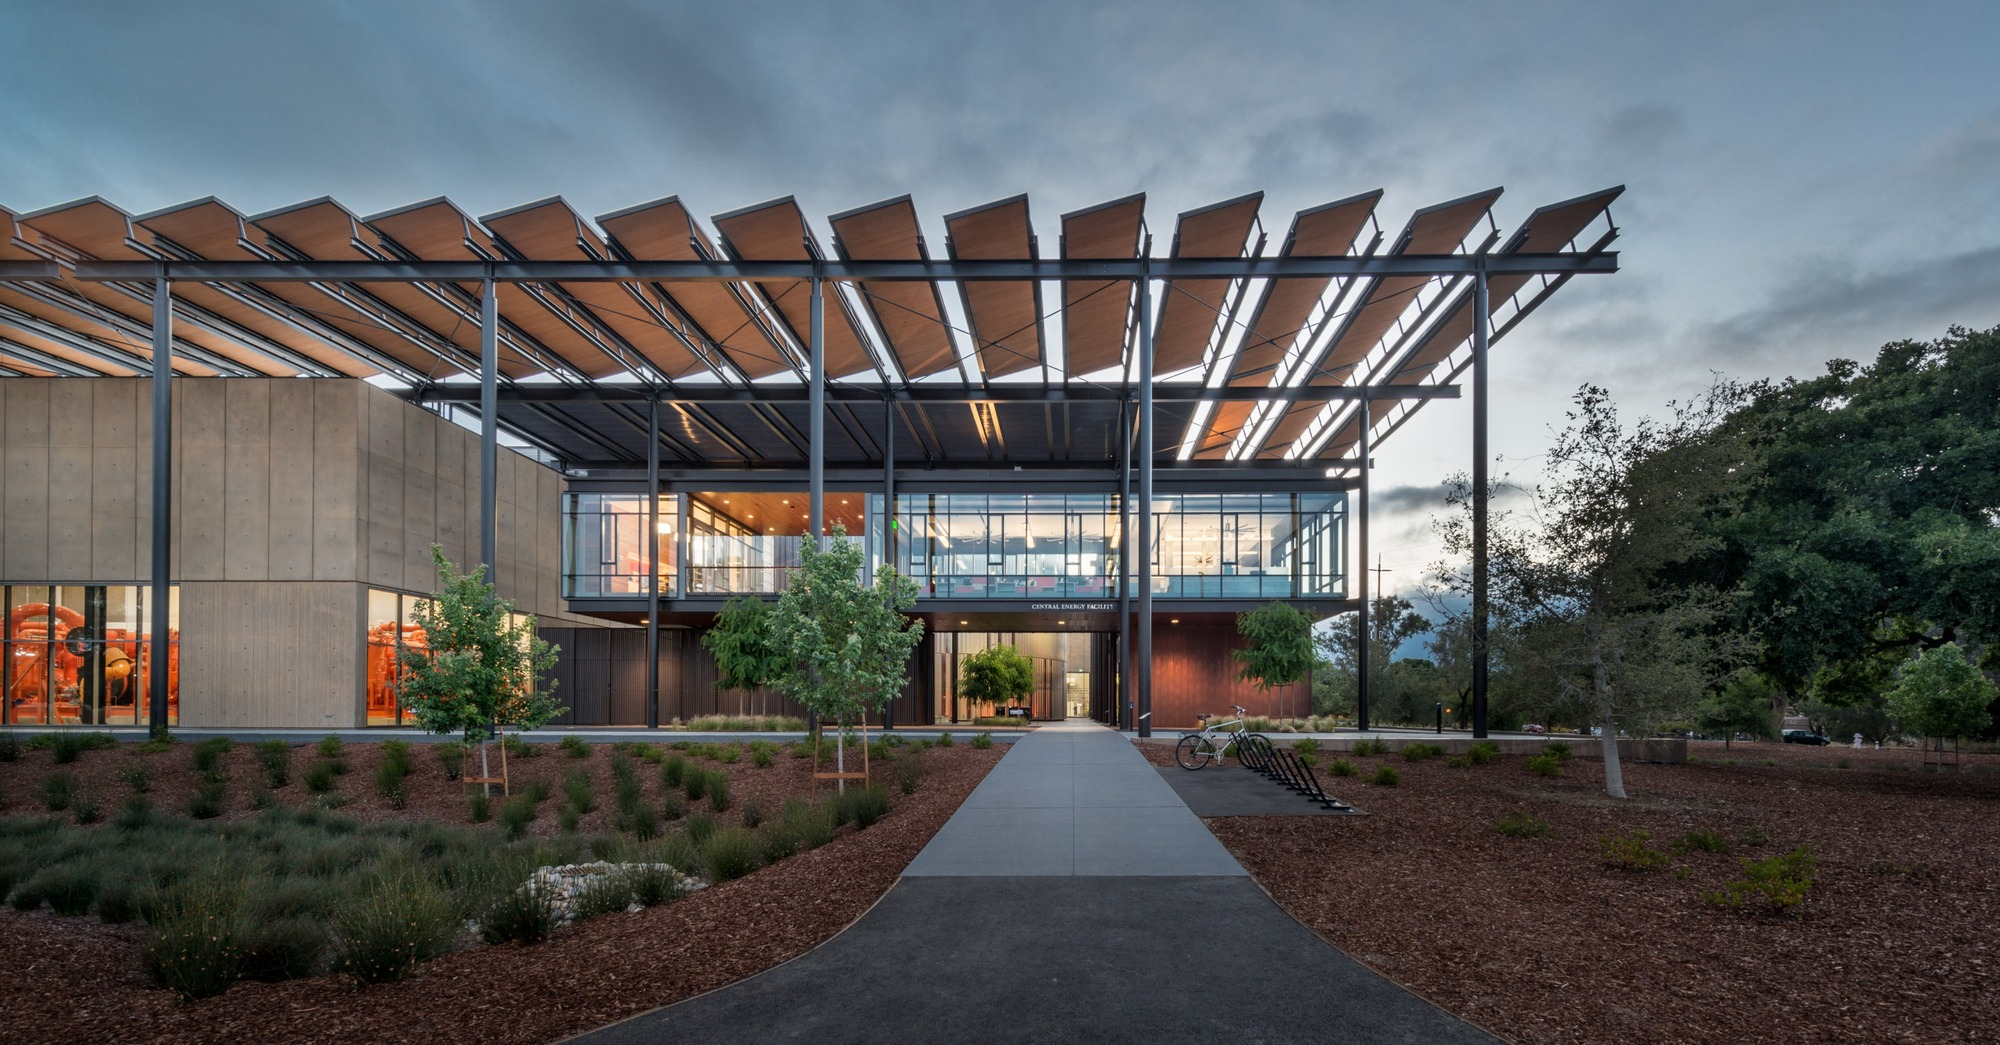 Stanford University Central Energy Facility  ZGF Architects | ArchDaily